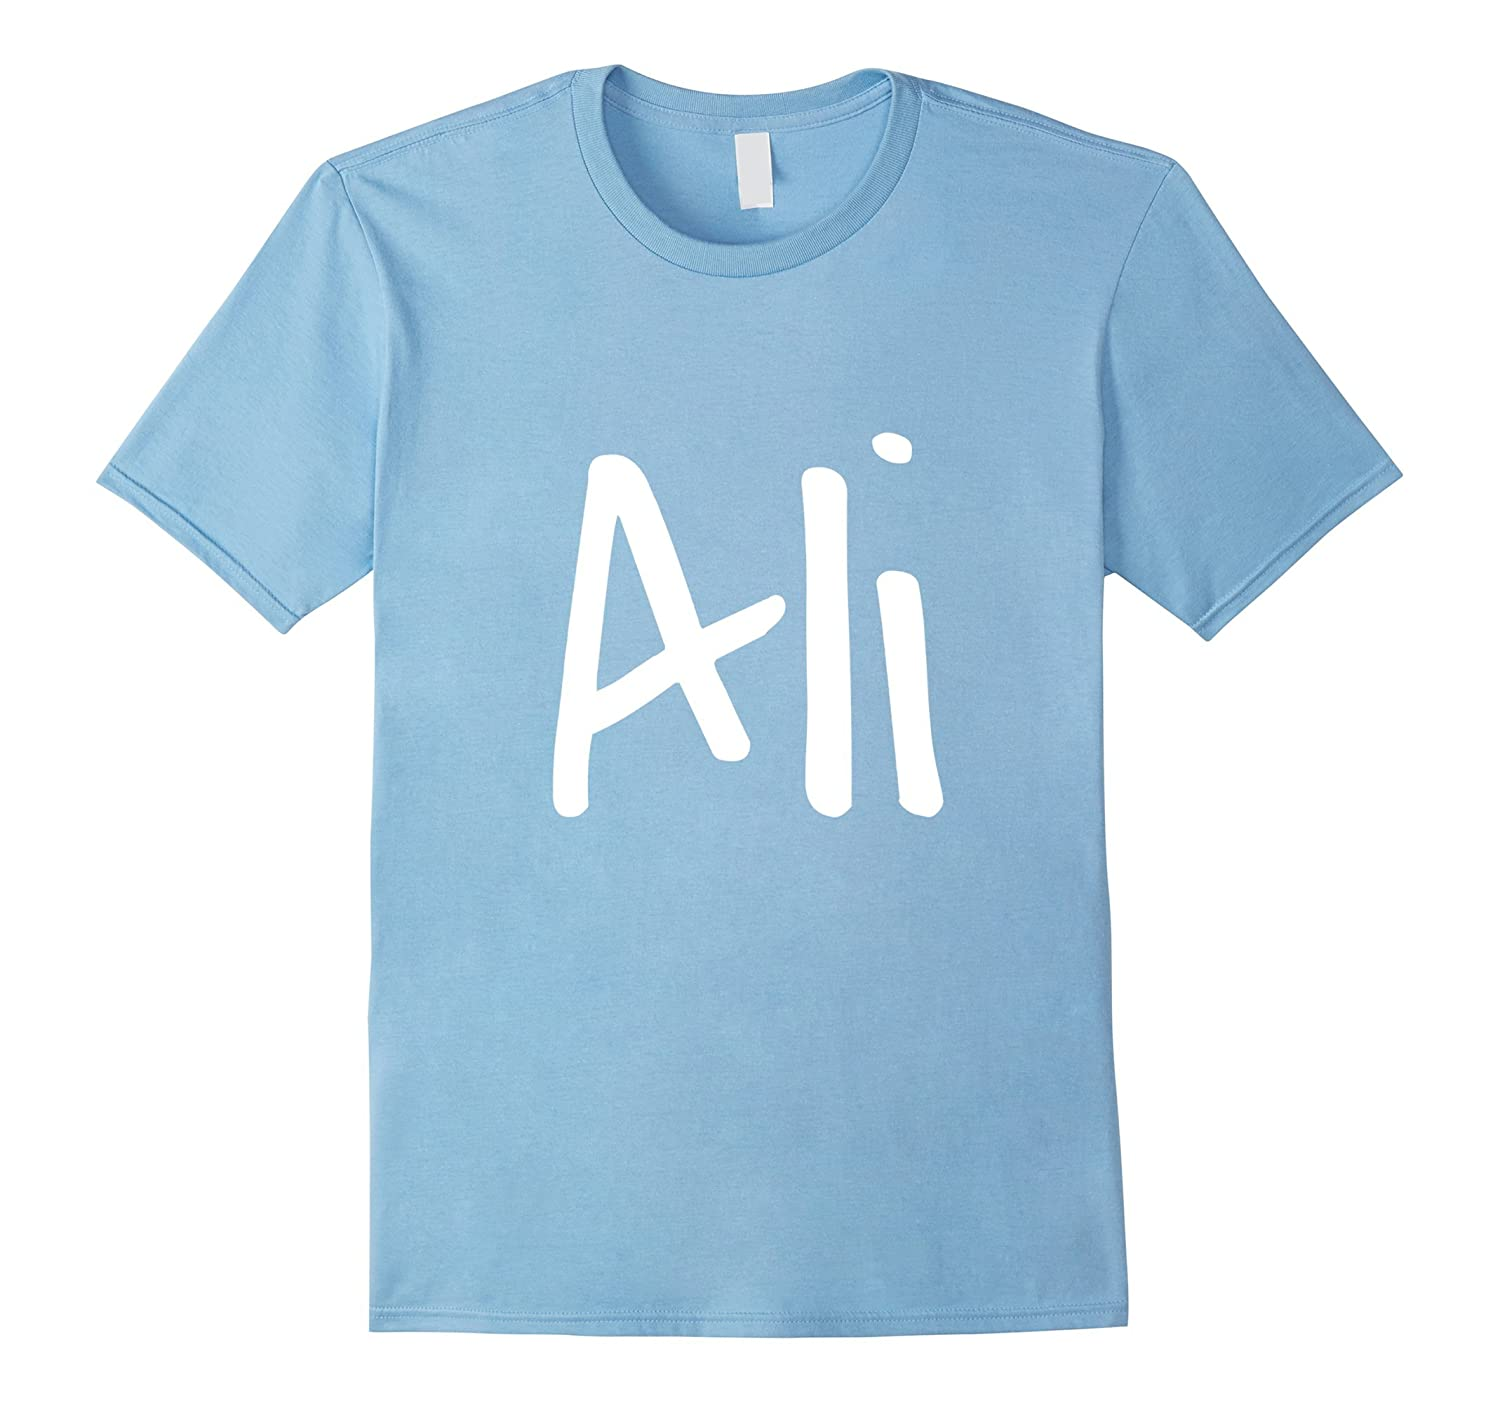 Ali - Your t-shirt with your name on it-PL